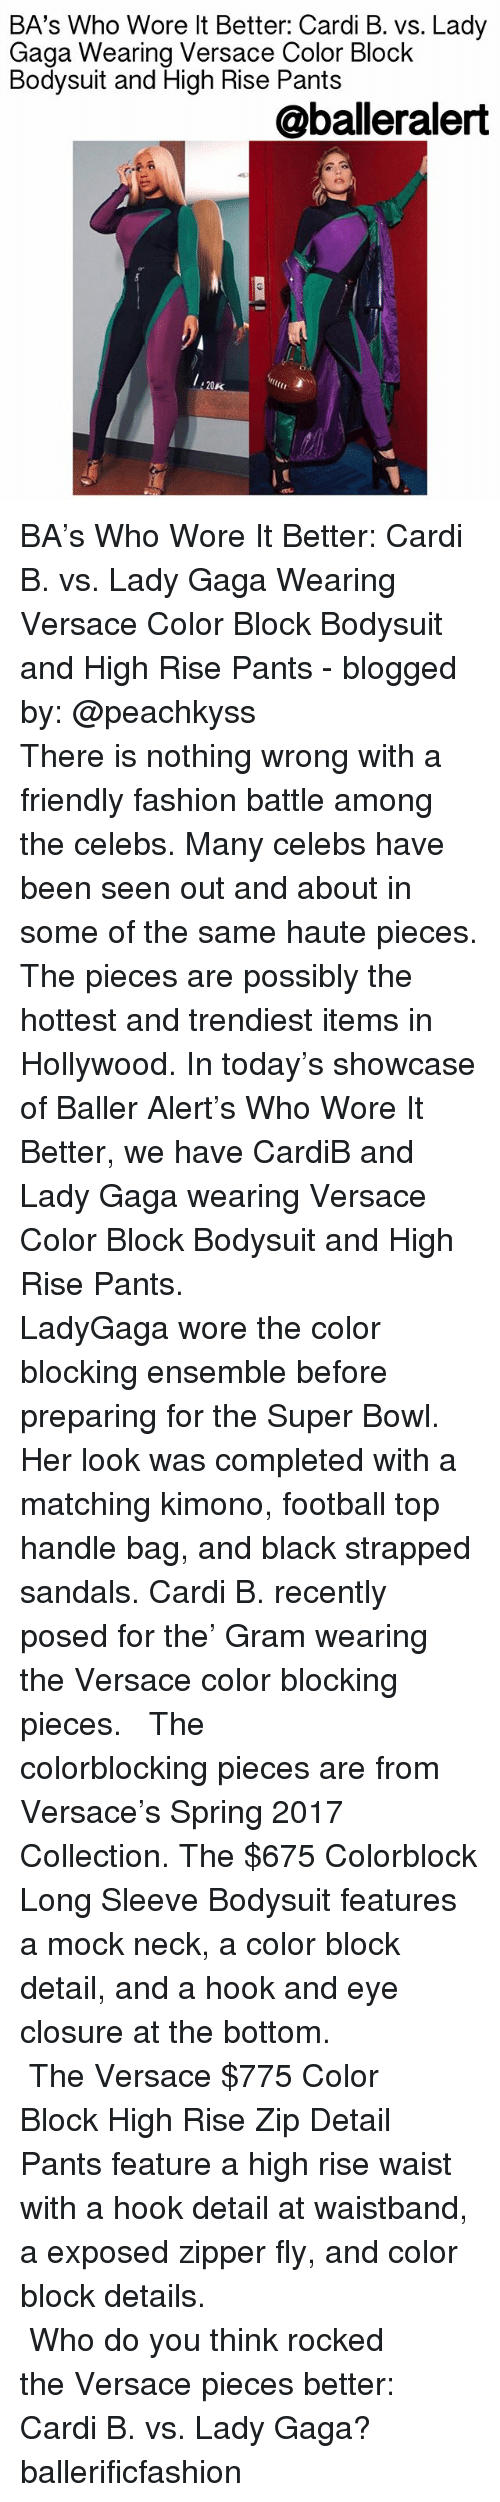 Bã¦: BA's Who Wore lt Better: Cardi B. vs. Lady  Gaga Wearina Versace Color Block  Bodysuit and High Rise Pants  @balleralert  20K BA's Who Wore It Better: Cardi B. vs. Lady Gaga Wearing Versace Color Block Bodysuit and High Rise Pants - blogged by: @peachkyss ⠀⠀⠀⠀⠀⠀⠀⠀⠀ ⠀⠀⠀⠀⠀⠀⠀⠀⠀ There is nothing wrong with a friendly fashion battle among the celebs. Many celebs have been seen out and about in some of the same haute pieces. The pieces are possibly the hottest and trendiest items in Hollywood. In today's showcase of Baller Alert's Who Wore It Better, we have CardiB and Lady Gaga wearing Versace Color Block Bodysuit and High Rise Pants. ⠀⠀⠀⠀⠀⠀⠀⠀⠀ ⠀⠀⠀⠀⠀⠀⠀⠀⠀ LadyGaga wore the color blocking ensemble before preparing for the Super Bowl. Her look was completed with a matching kimono, football top handle bag, and black strapped sandals. Cardi B. recently posed for the' Gram wearing the Versace color blocking pieces. ⠀⠀⠀⠀⠀⠀⠀⠀⠀ ⠀⠀⠀⠀⠀⠀⠀⠀⠀ The colorblocking pieces are from Versace's Spring 2017 Collection. The $675 Colorblock Long Sleeve Bodysuit features a mock neck, a color block detail, and a hook and eye closure at the bottom. ⠀⠀⠀⠀⠀⠀⠀⠀⠀ ⠀⠀⠀⠀⠀⠀⠀⠀⠀ The Versace $775 Color Block High Rise Zip Detail Pants feature a high rise waist with a hook detail at waistband, a exposed zipper fly, and color block details. ⠀⠀⠀⠀⠀⠀⠀⠀⠀ ⠀⠀⠀⠀⠀⠀⠀⠀⠀ ⠀⠀⠀⠀⠀⠀⠀⠀⠀ ⠀⠀⠀⠀⠀⠀⠀⠀⠀ Who do you think rocked the Versace pieces better: Cardi B. vs. Lady Gaga? ballerificfashion